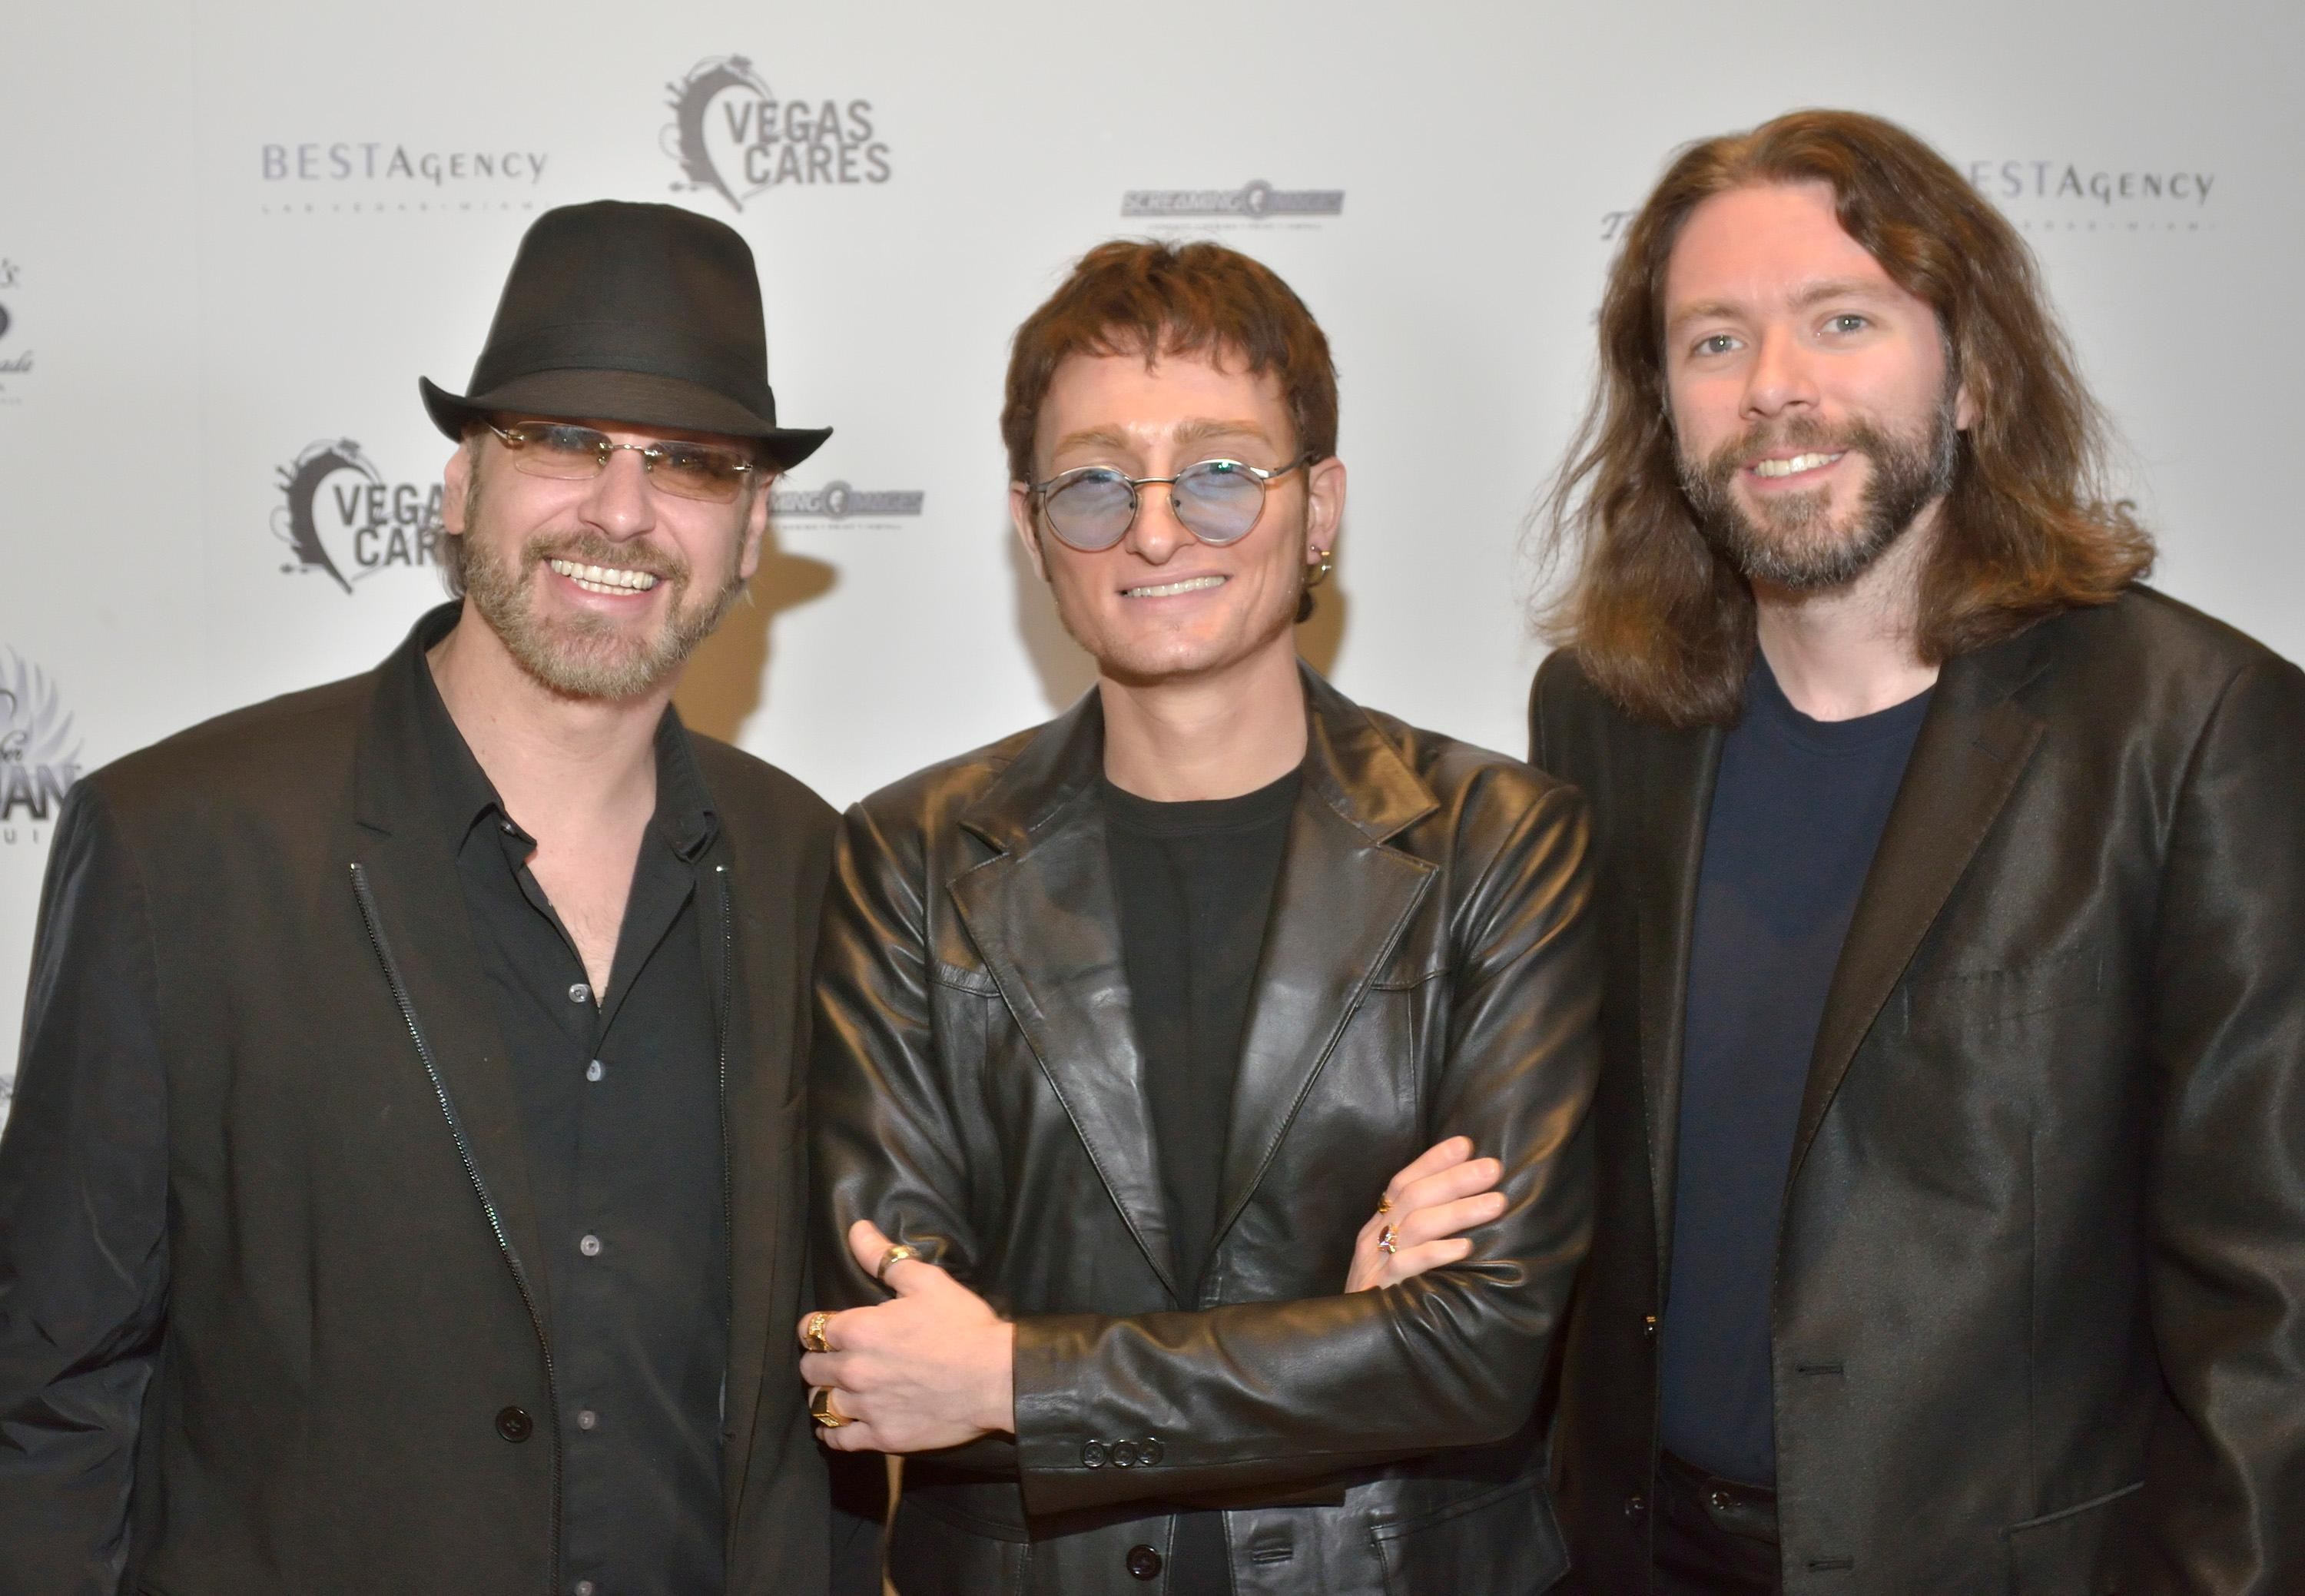 "Members of ""The Australian Bee Gees Show"" are shown at the ""Vegas Cares"" benefit concert at the Venetian Theatre in the Venetian hotel-casino at 3355 S. Las Vegas Blvd in Las Vegas on Sunday, Nov 5, 2017. The concert was sponsored by a group of Las Vegas entertainers, producers and business professionals to honor the victims and first responders from shooting at the Route 91 Harvest festival. (Photo/Las Vegas News Bureau/Bill Hughes)"